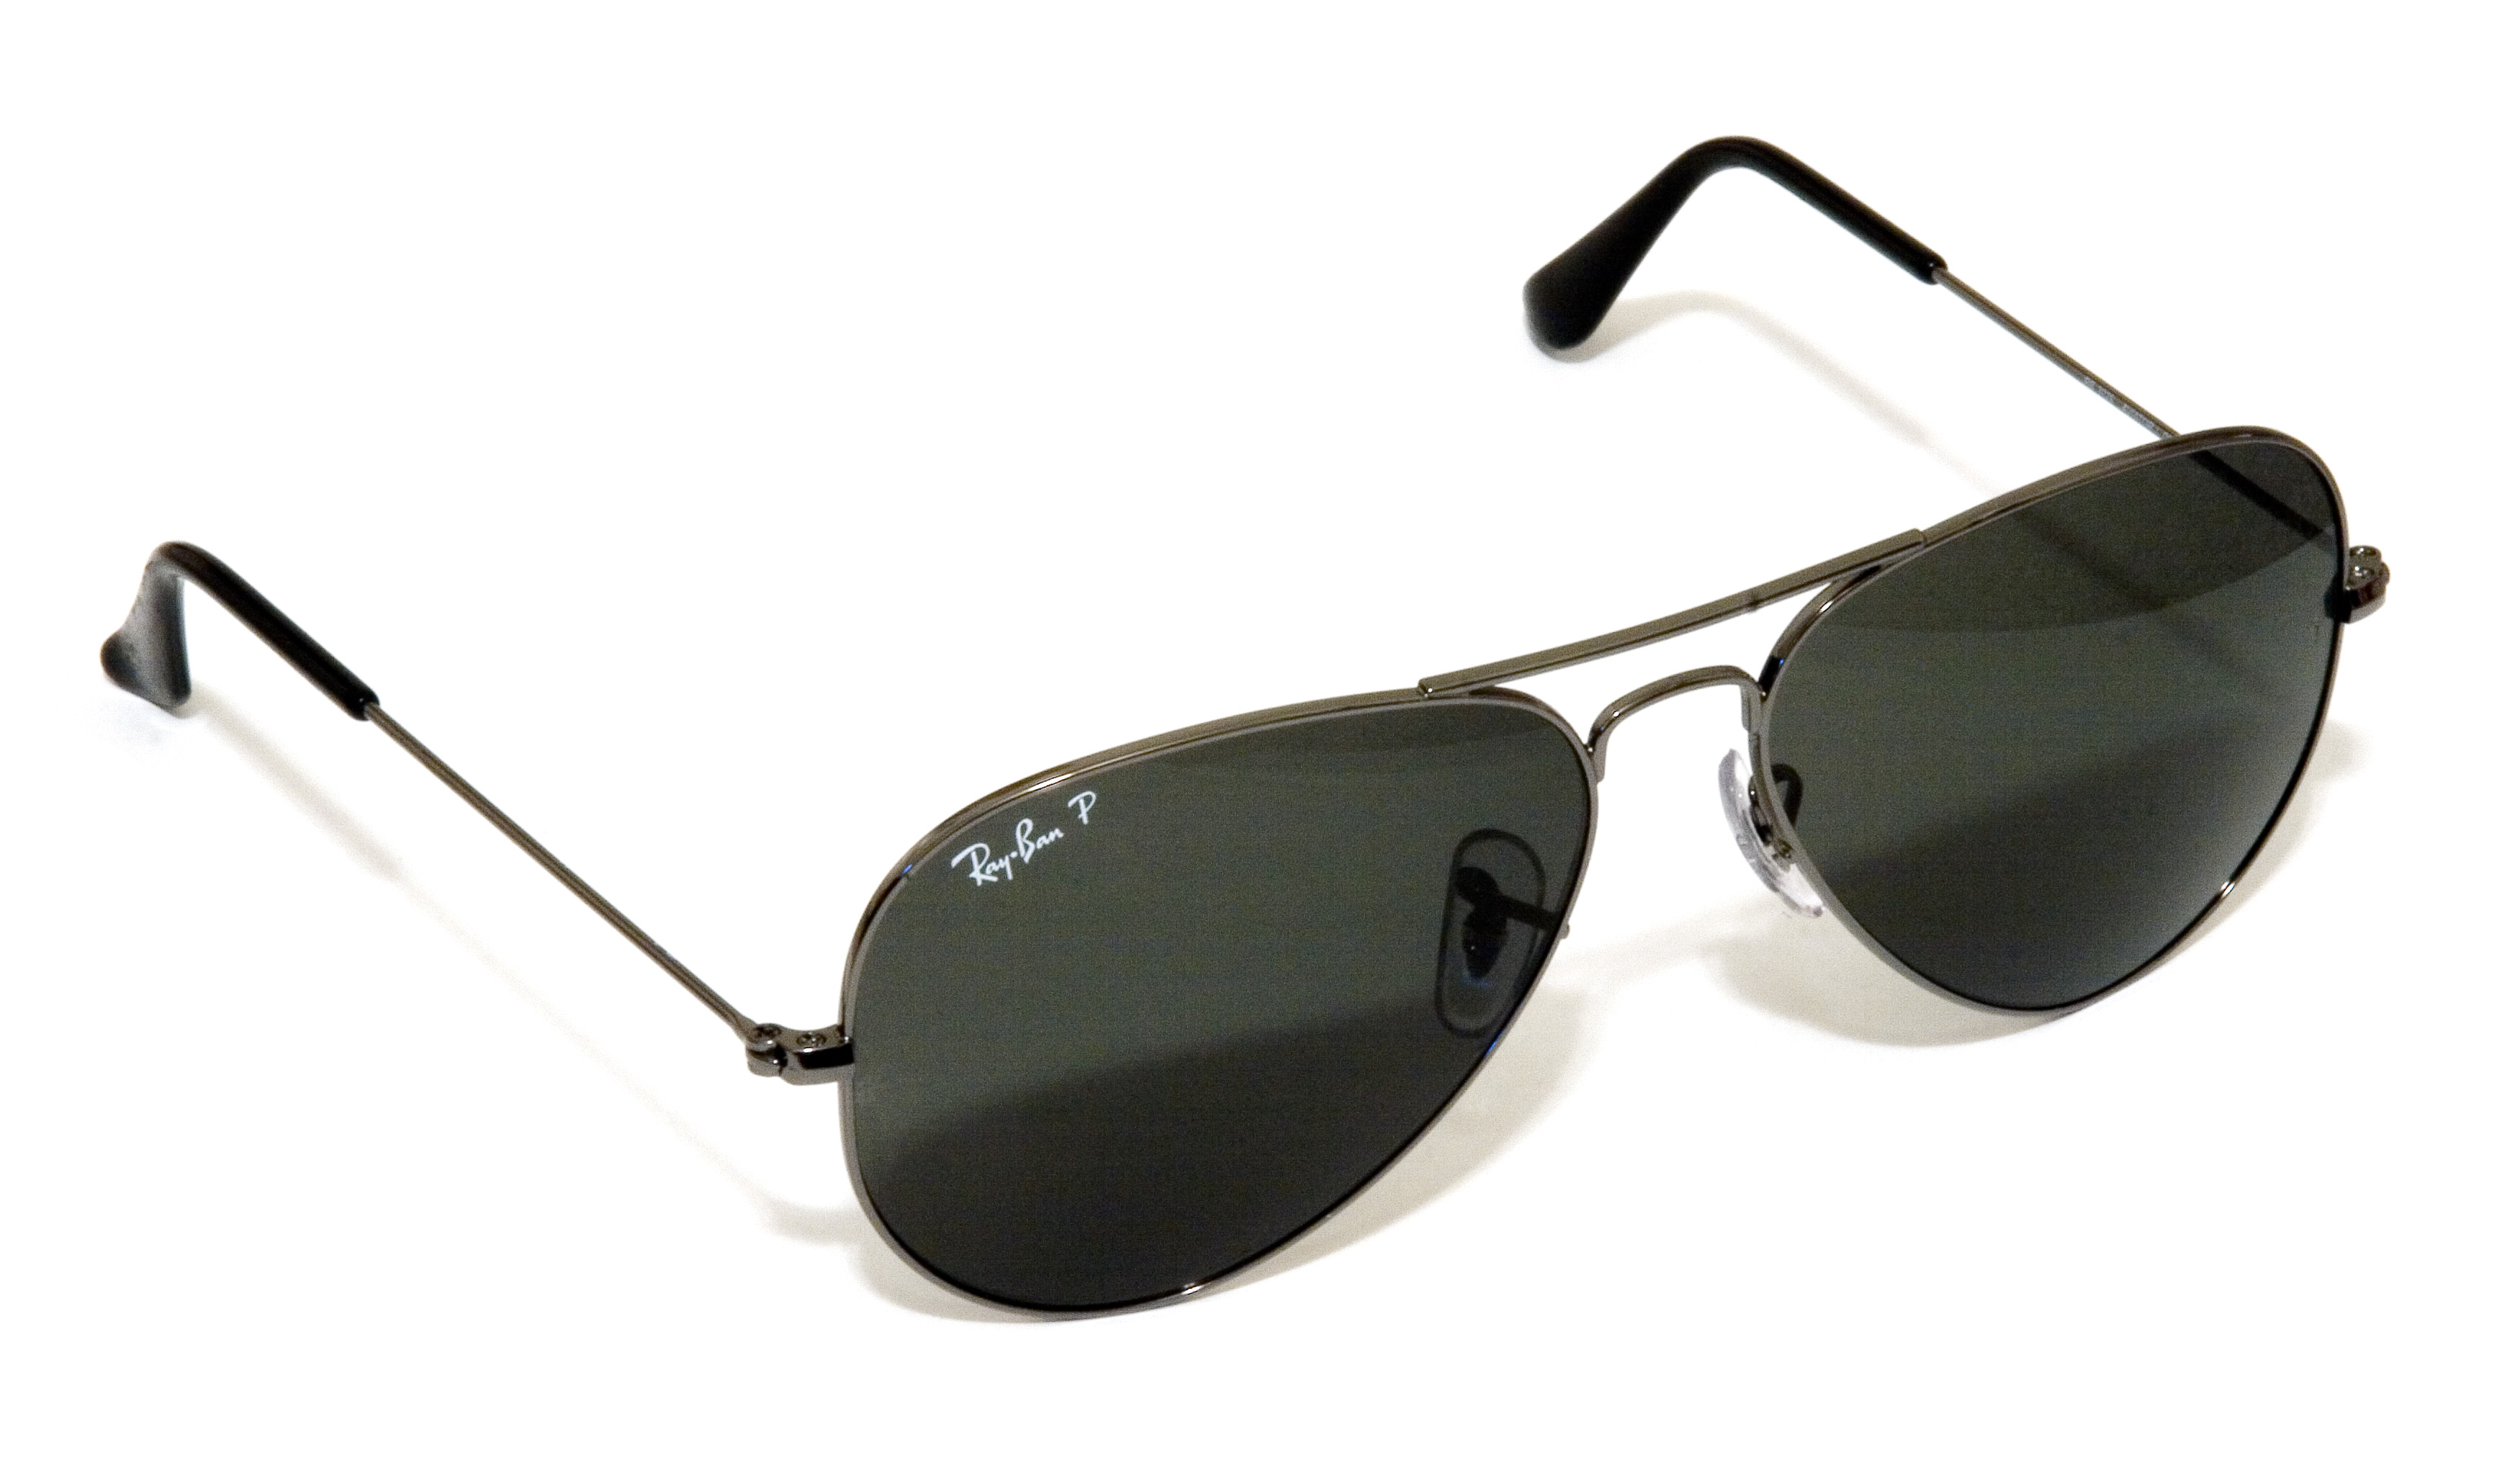 ae366700f92ee Aviator sunglasses - Wikipedia